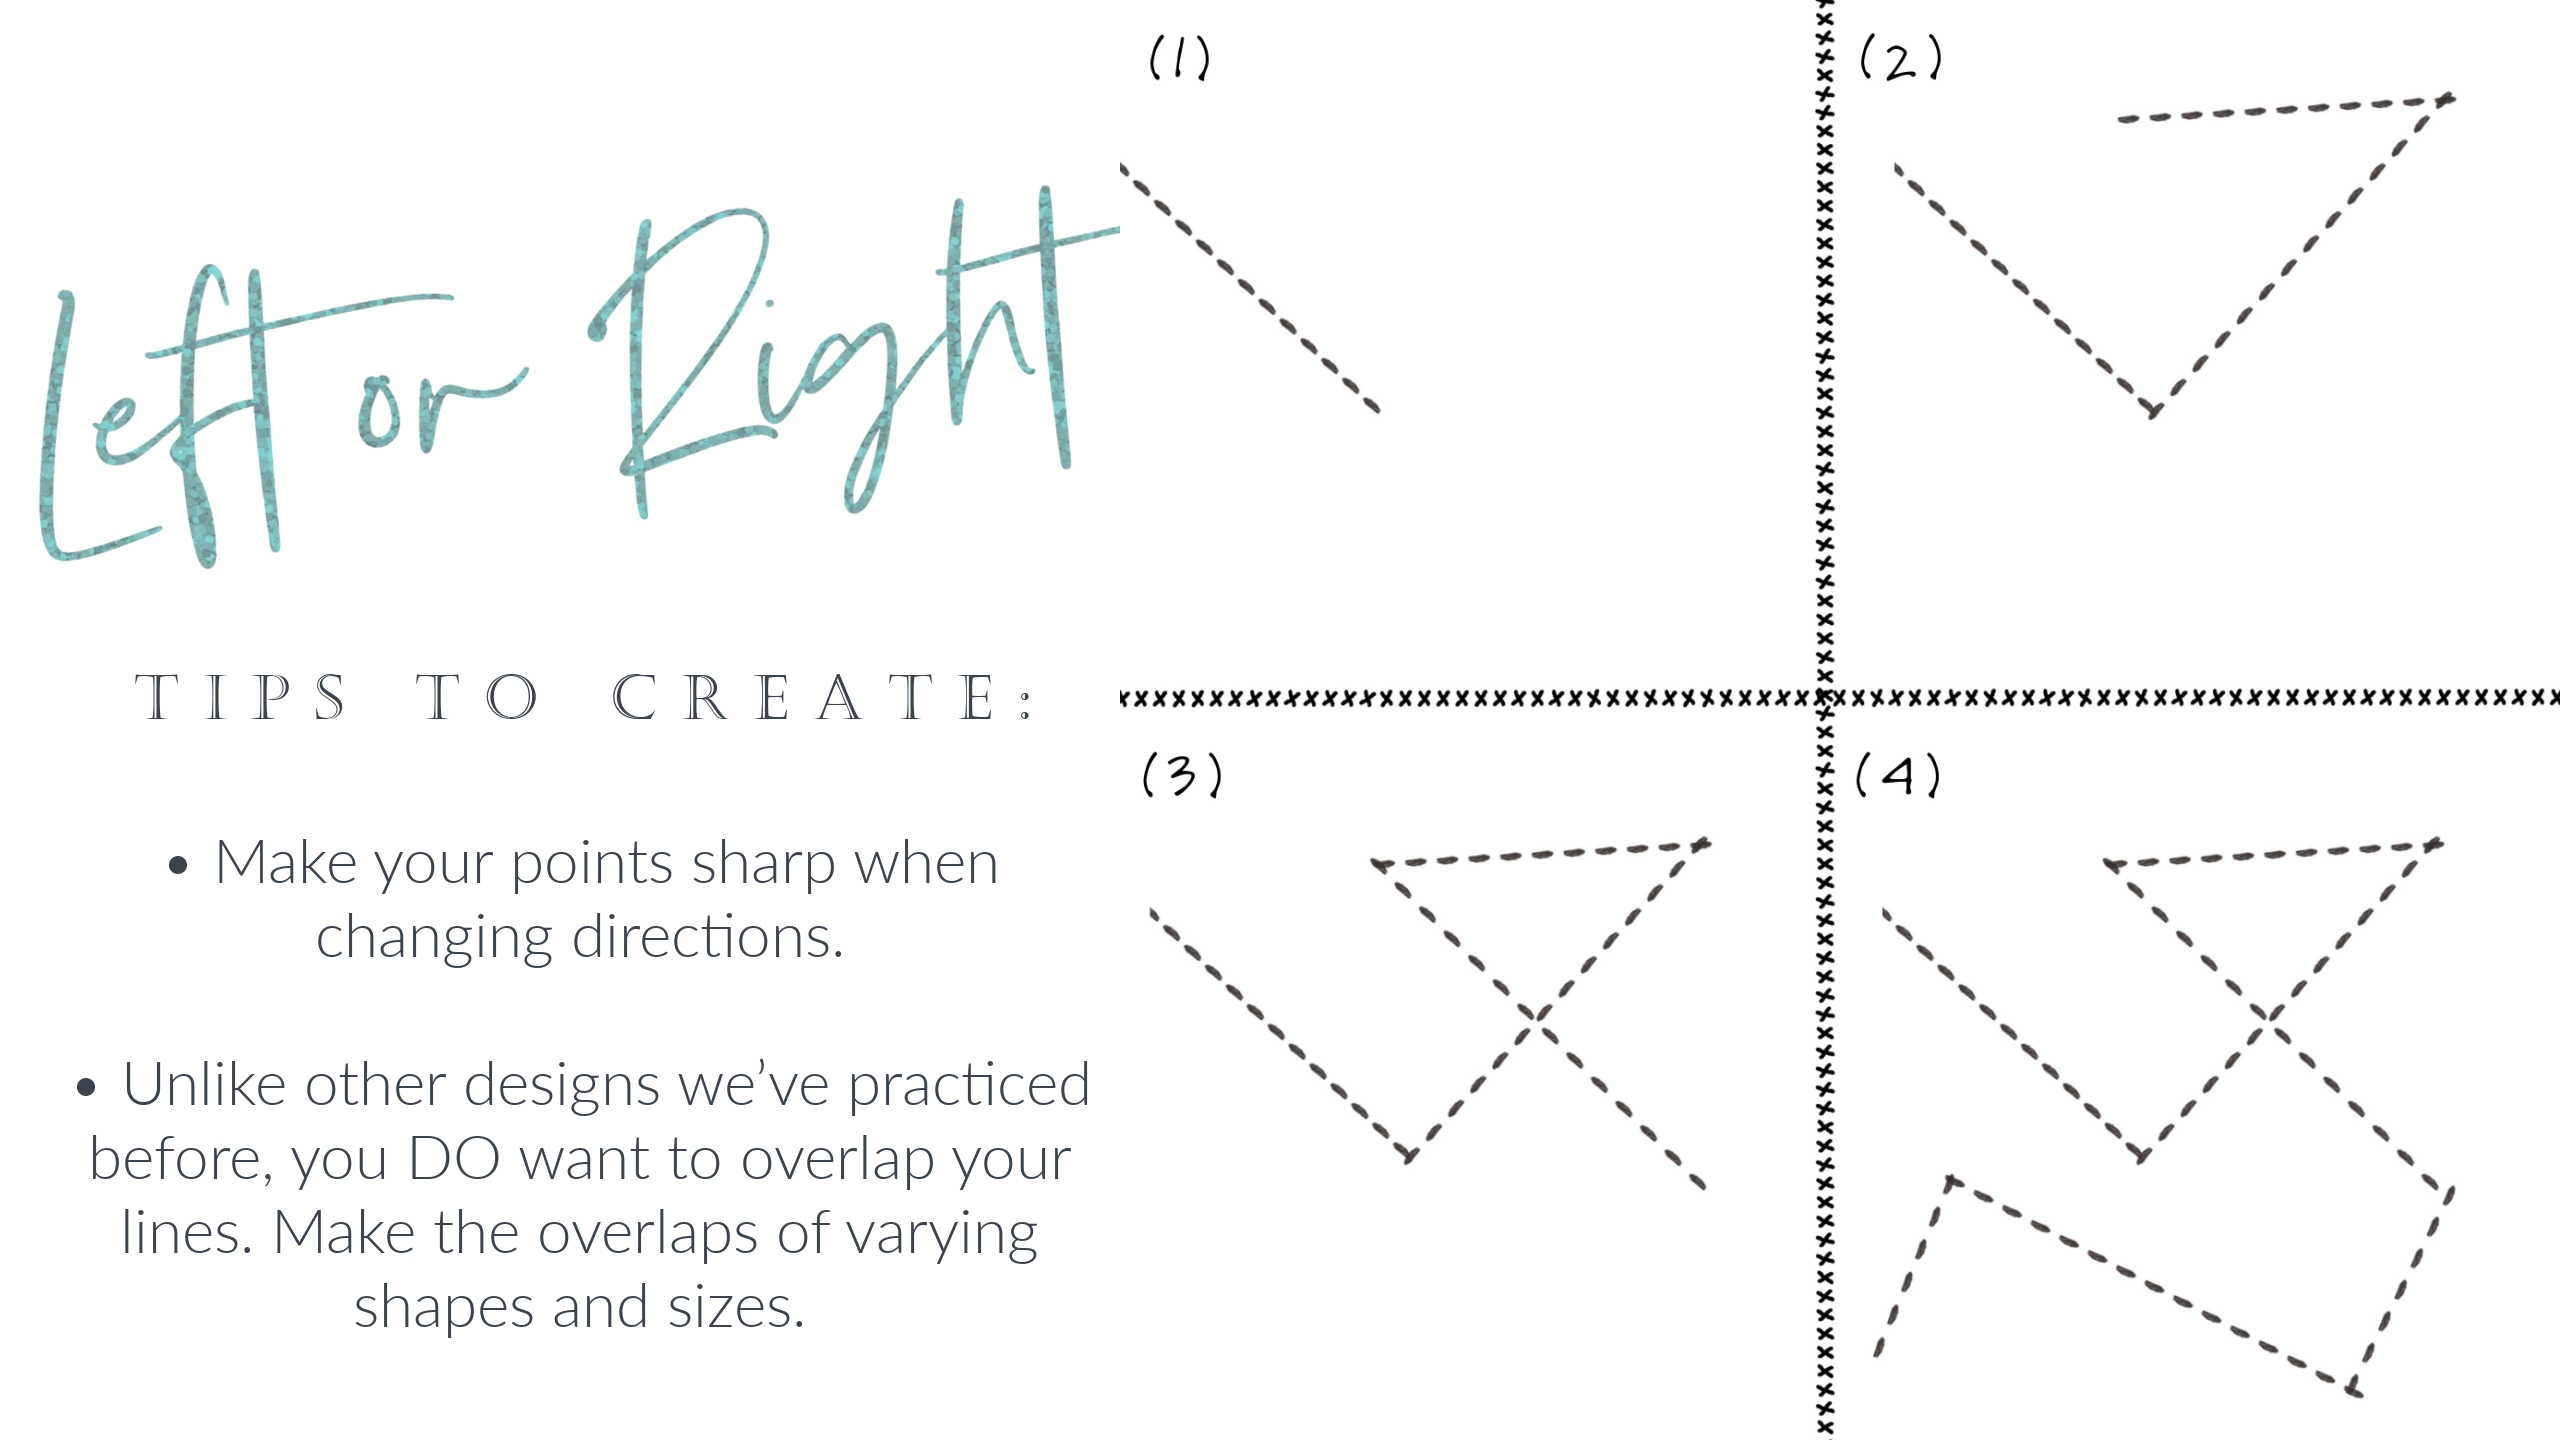 How to Free Motion Quilt Zig Zags: in this how-to video, we will teach you how to make zig zags (left or right), along with two key tips for makin them as lovely as possible!